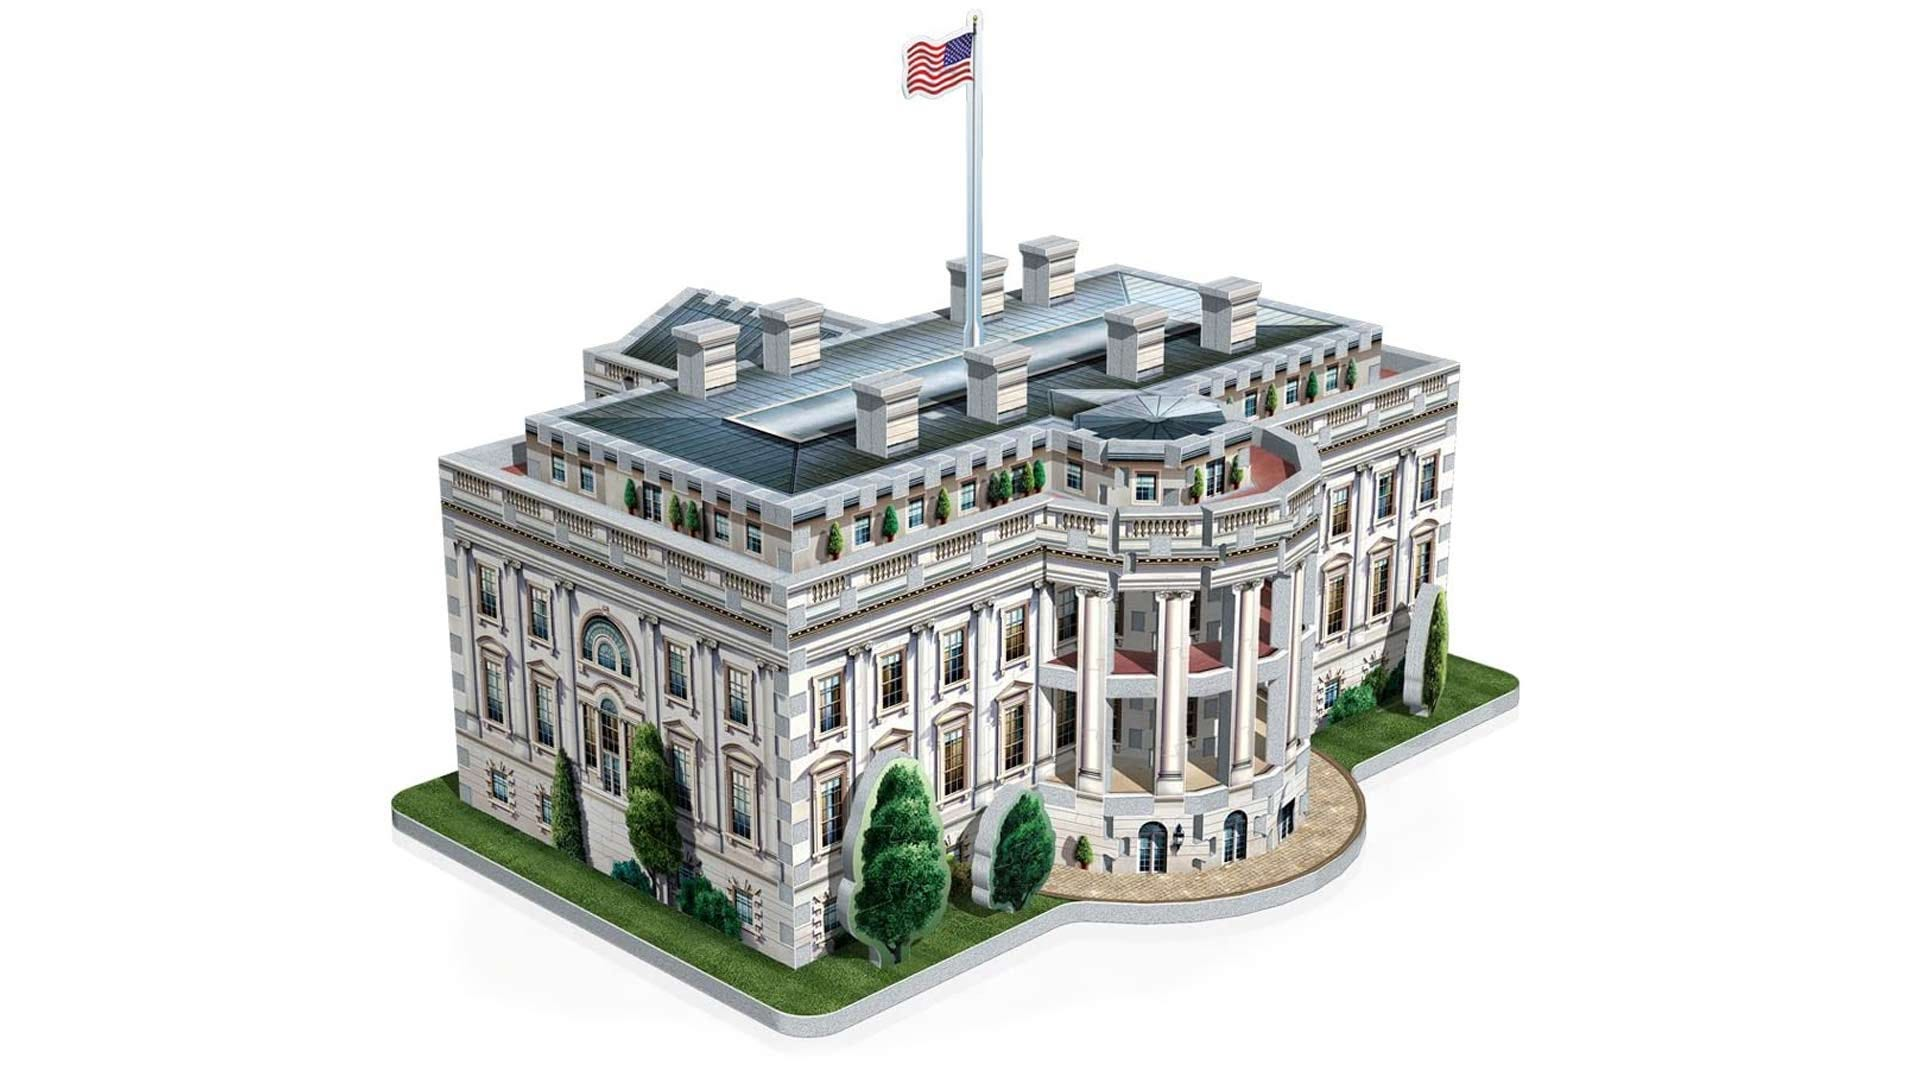 The completed White House 3D Puzzle.